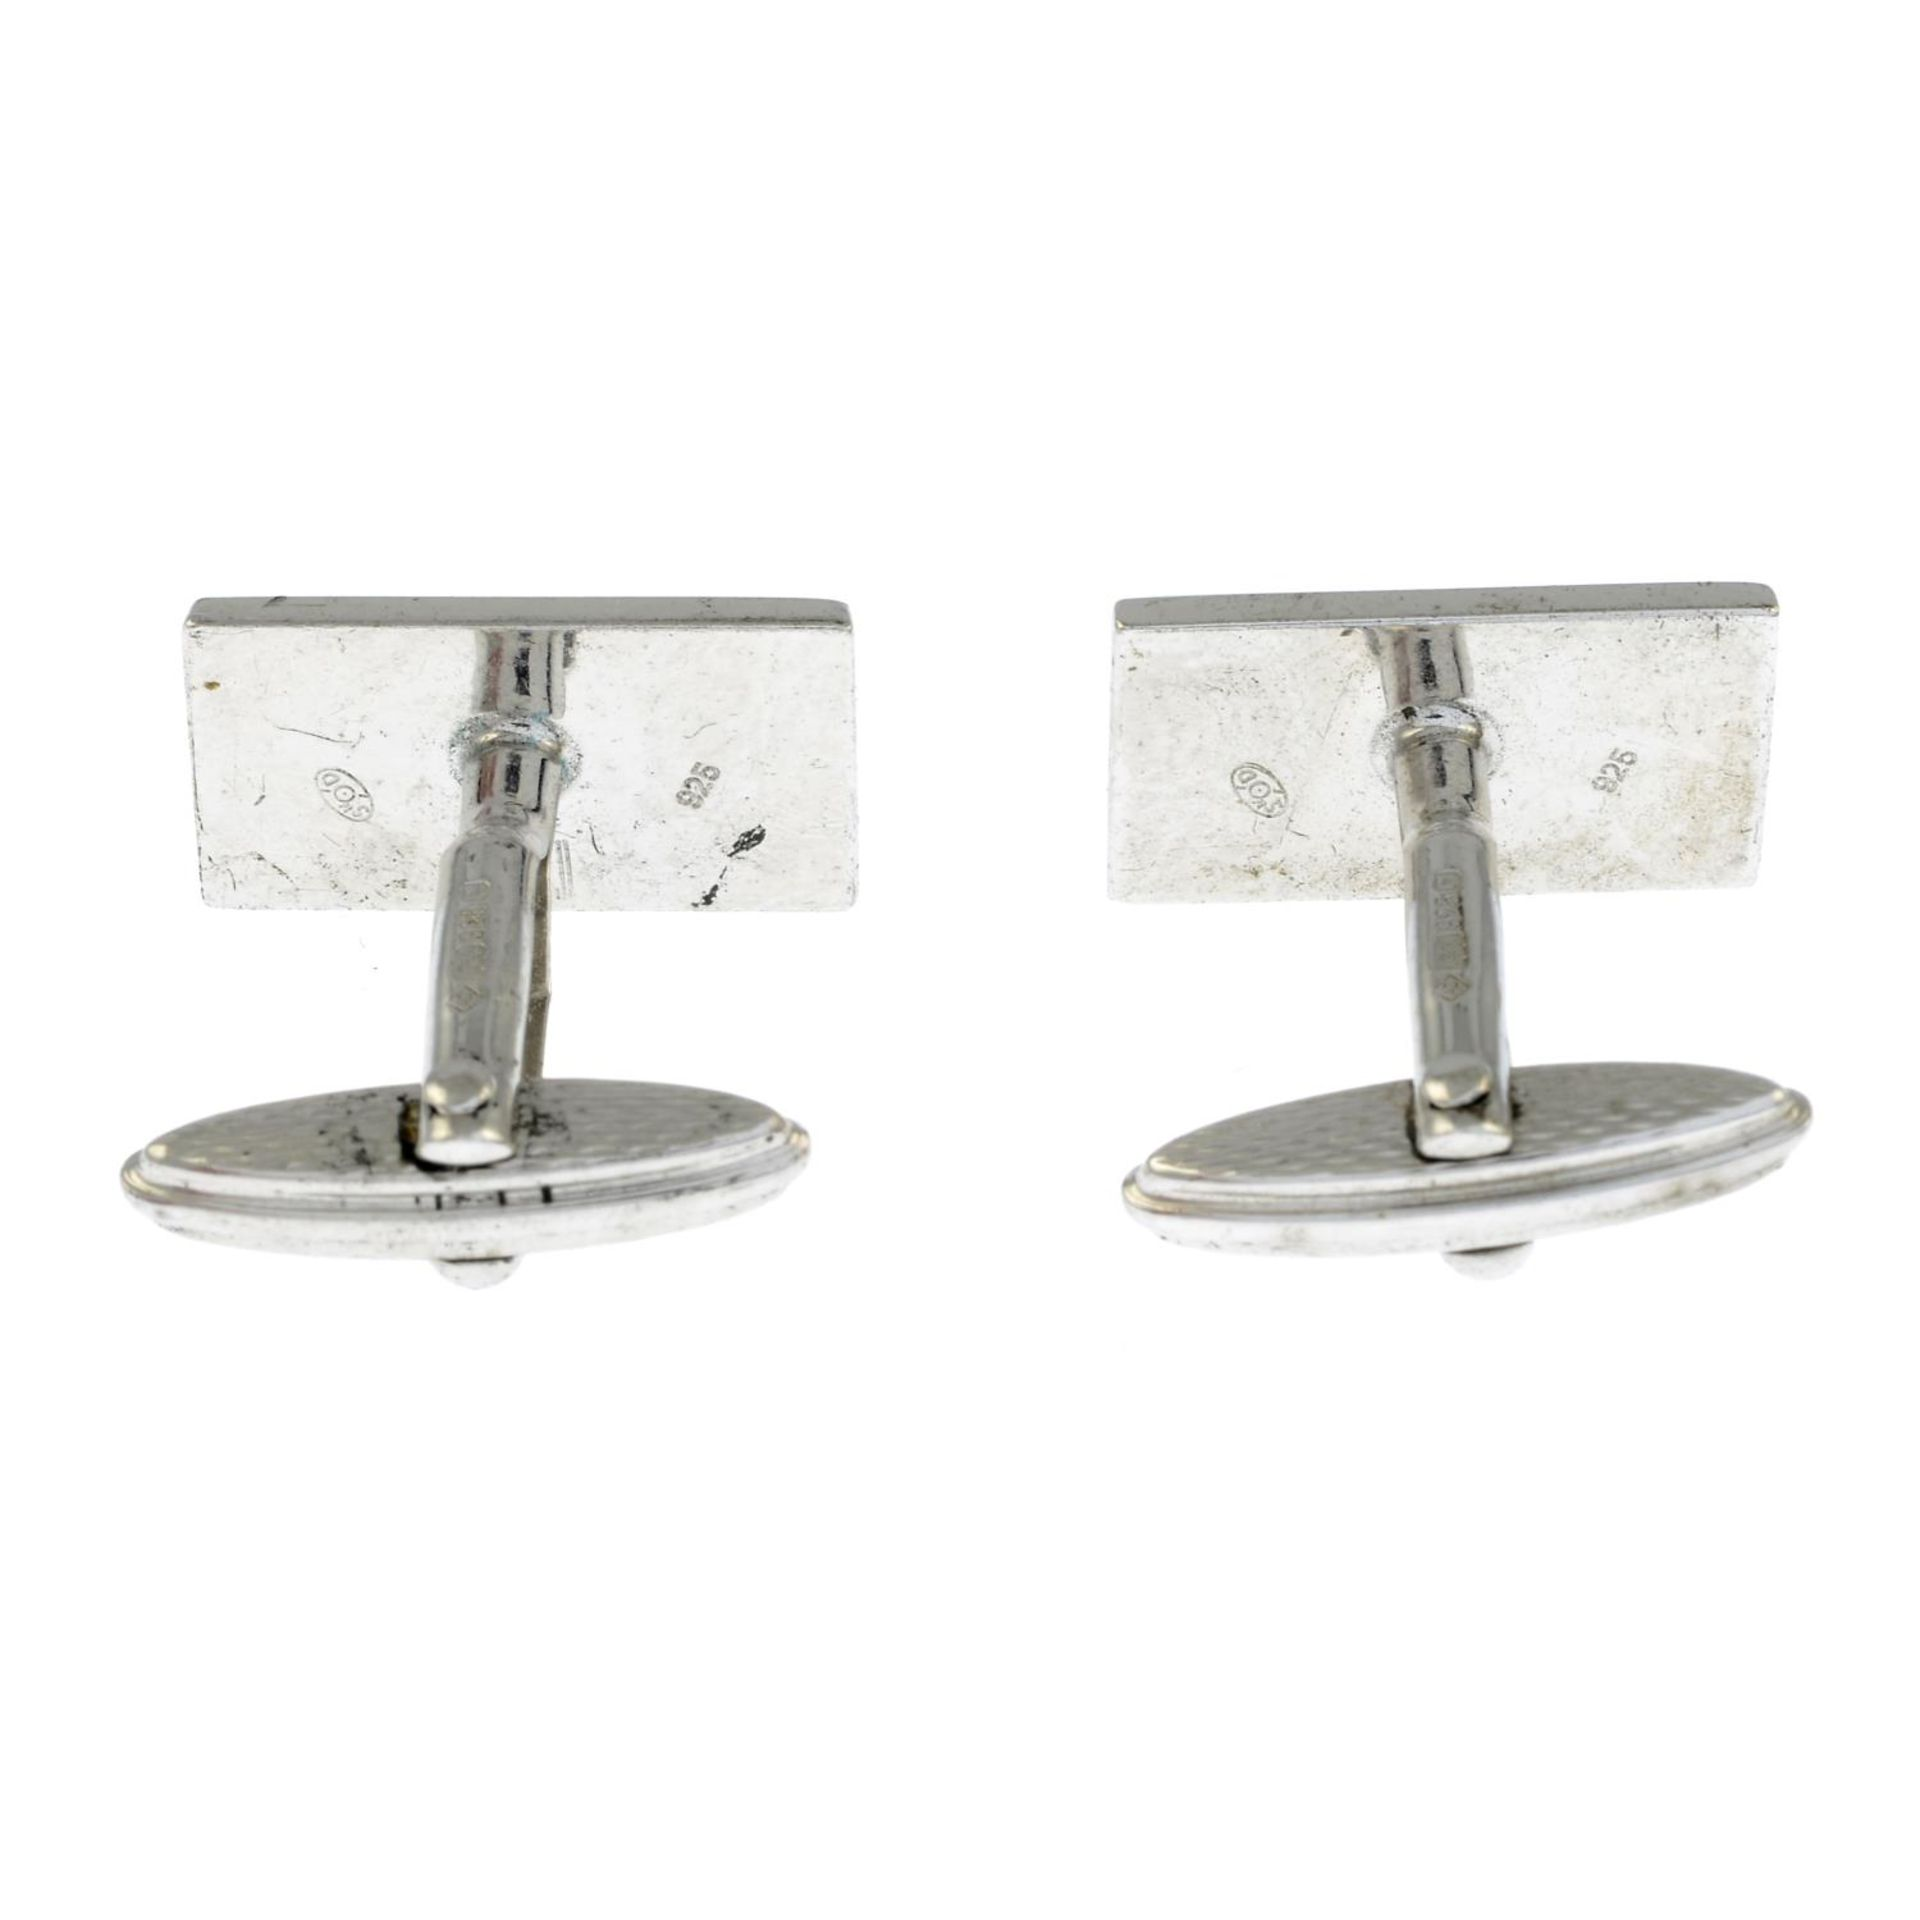 A pair of silver Dunhill enamel cufflinksHallmarks for London, AD makers mark. - Image 2 of 2